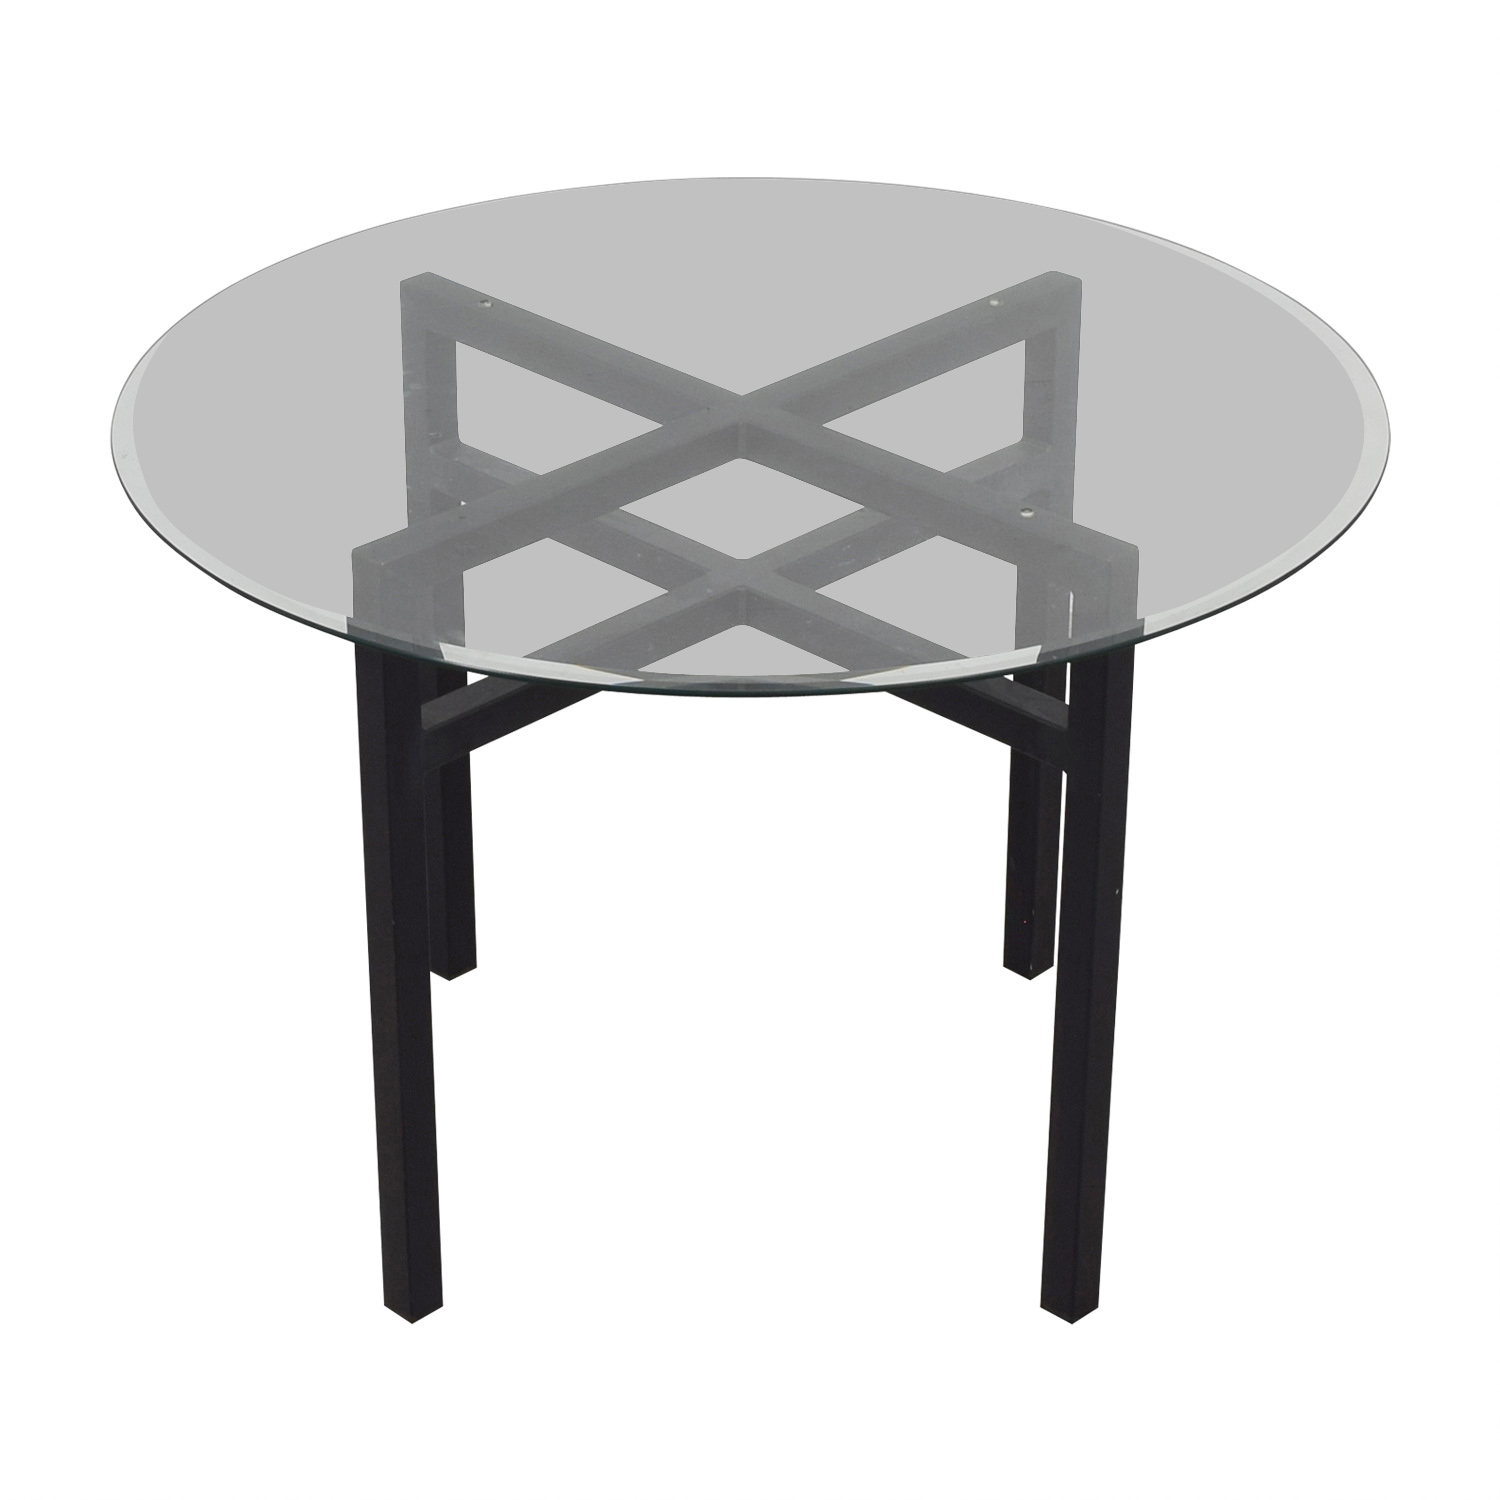 shop Room & Board Room & Board Benson Round Glass Top Dining Table online